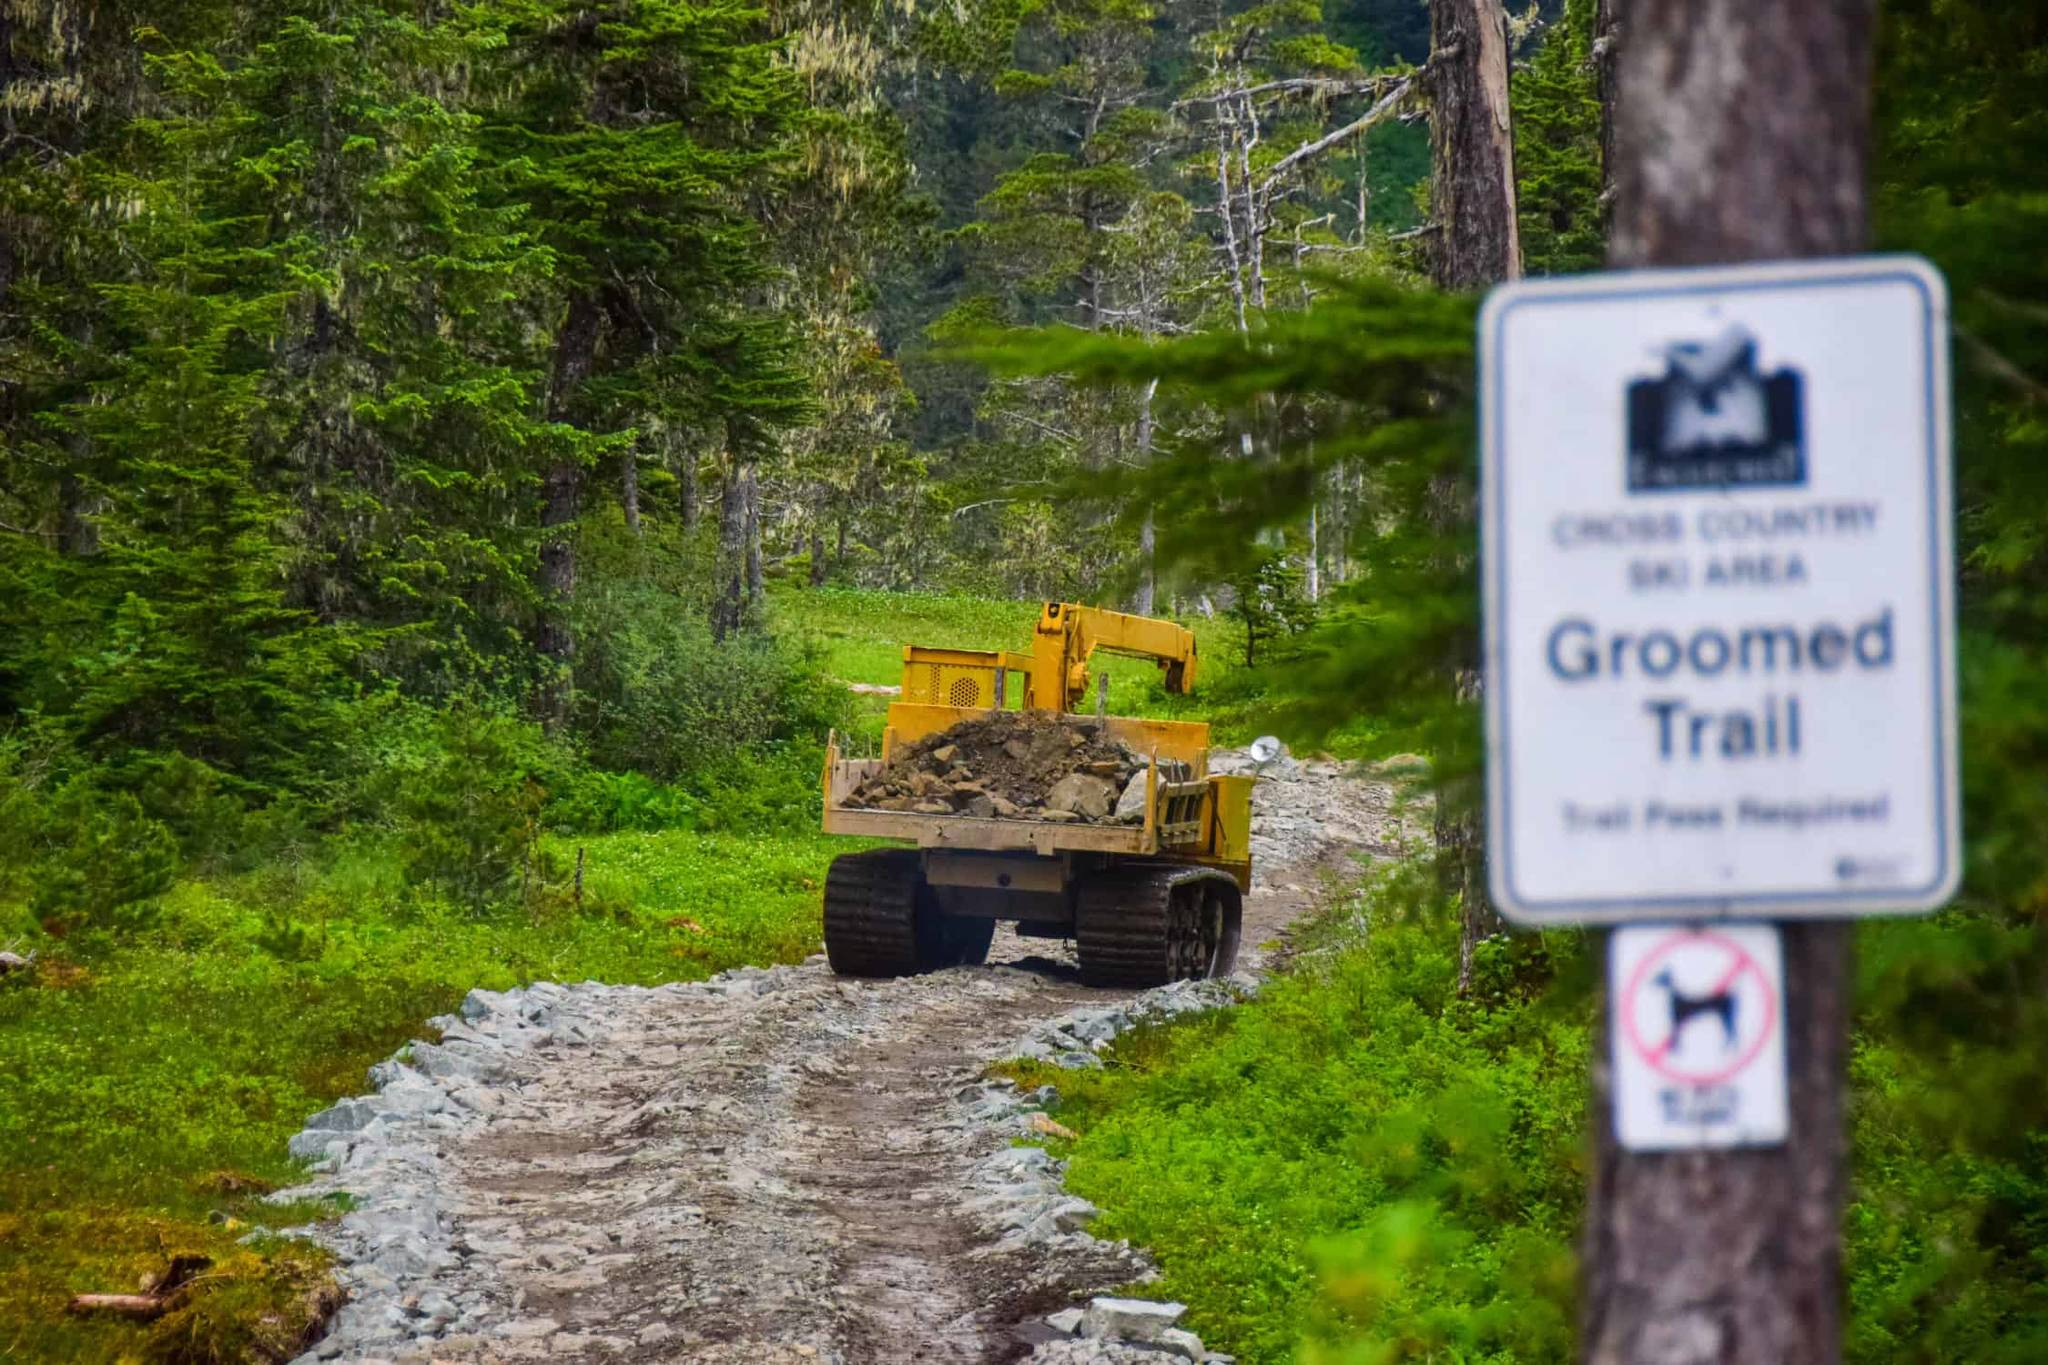 Eaglecrest Ski Area is working to improve its lower Nordic trails, hardening them to provide a better base for grooming equipment during the winter season, among other improvements this summer. (Courtesy photo / Charlie Herrington)